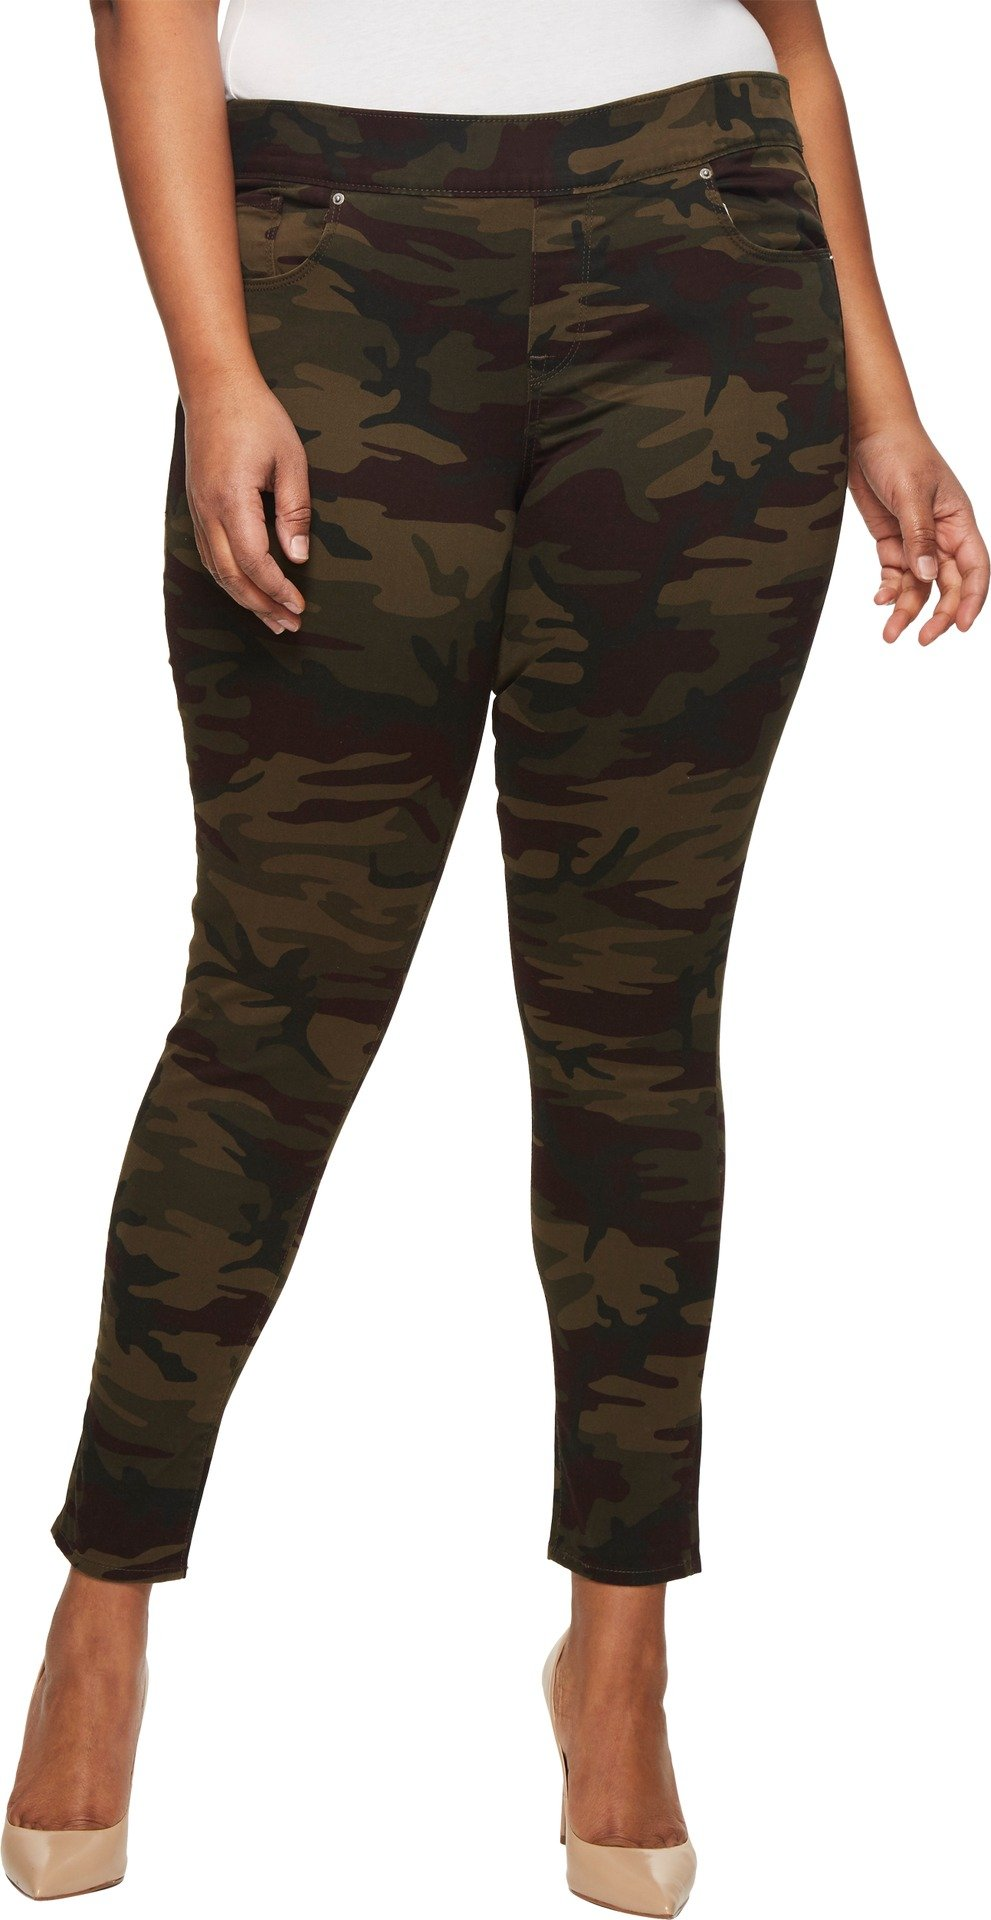 Levi's Women's Plus Size Perfectly Slimming Pull-on Skinny Jeans, Dark Camo, 36 (US 16) R